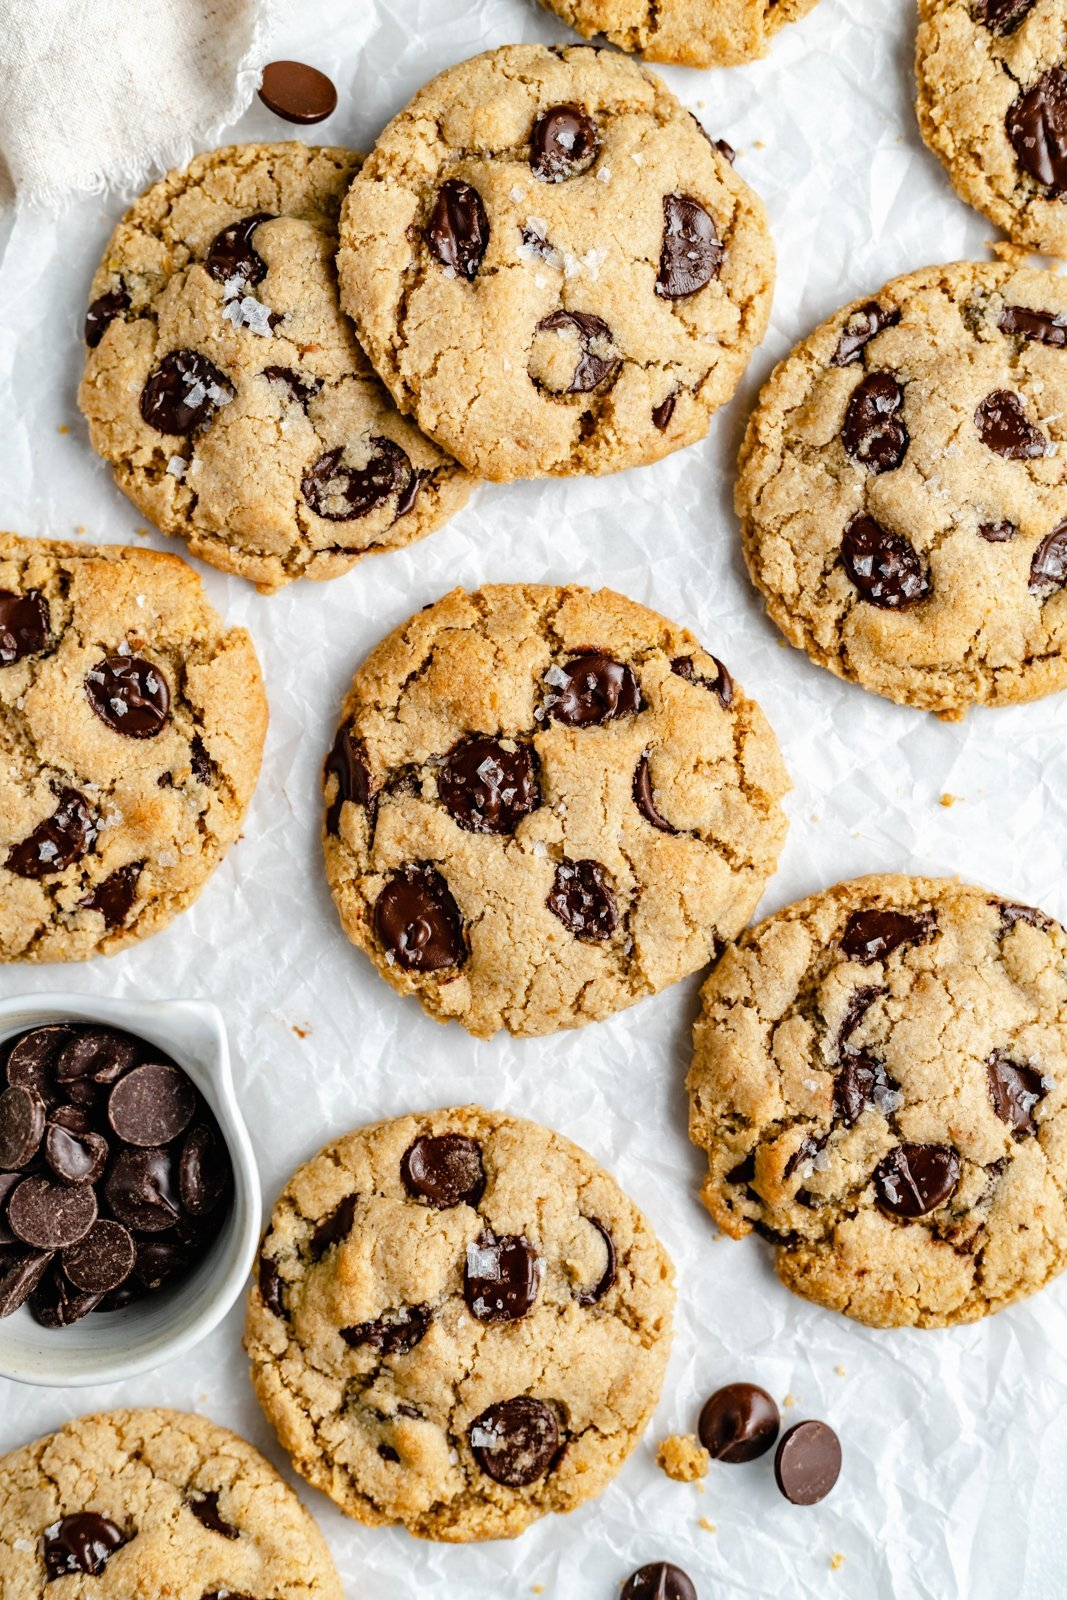 gluten free vegan chocolate chip cookies on parchment paper